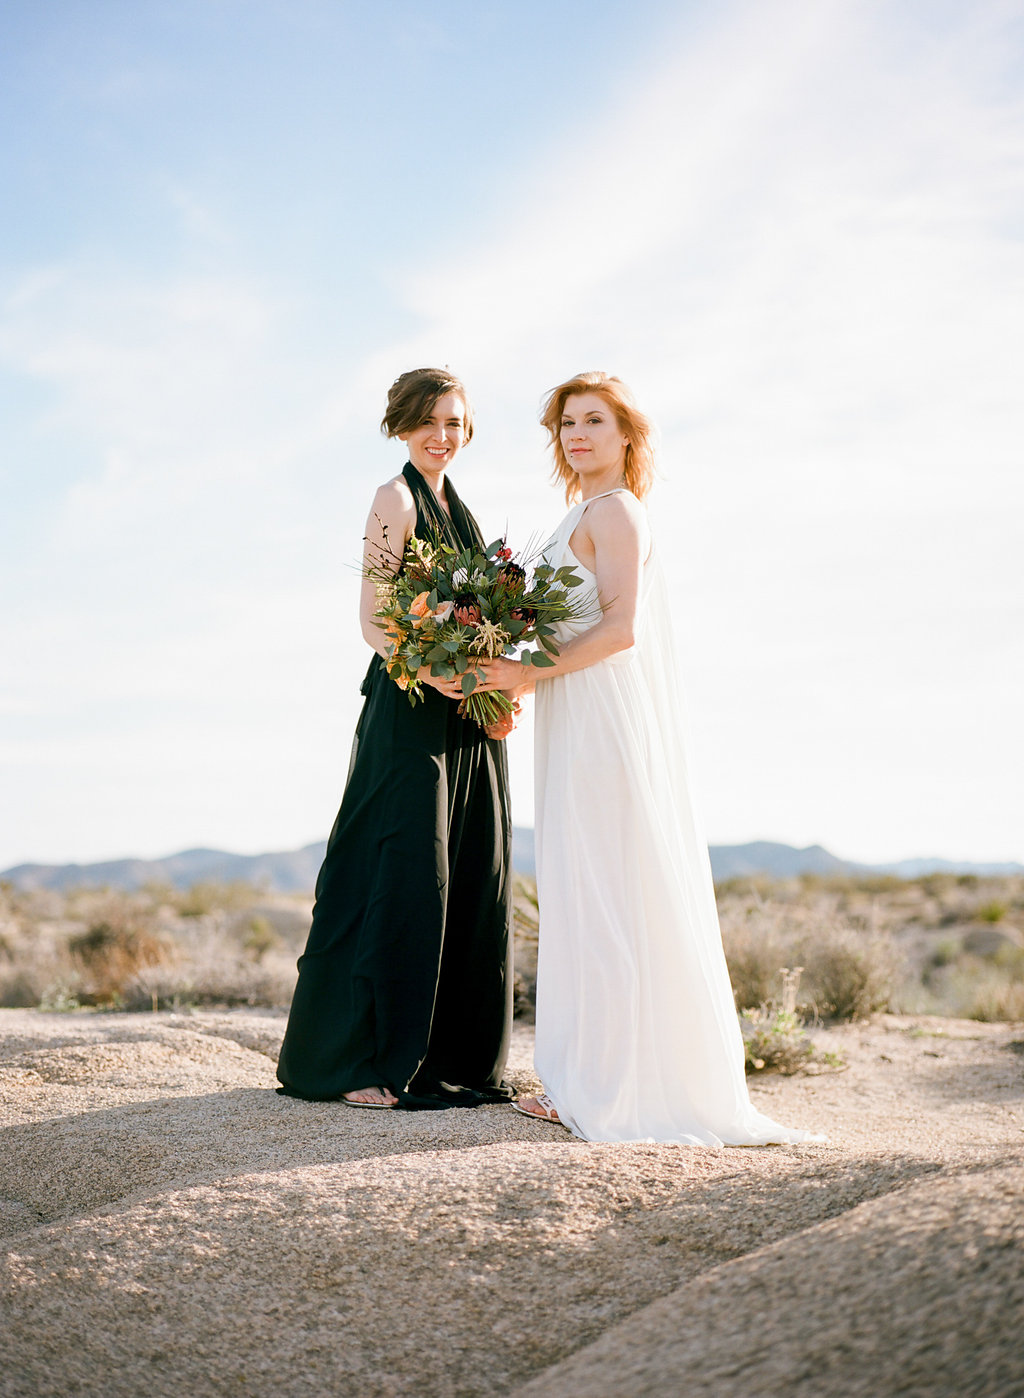 Jessica Schilling Wedding Photography couple with bouquet